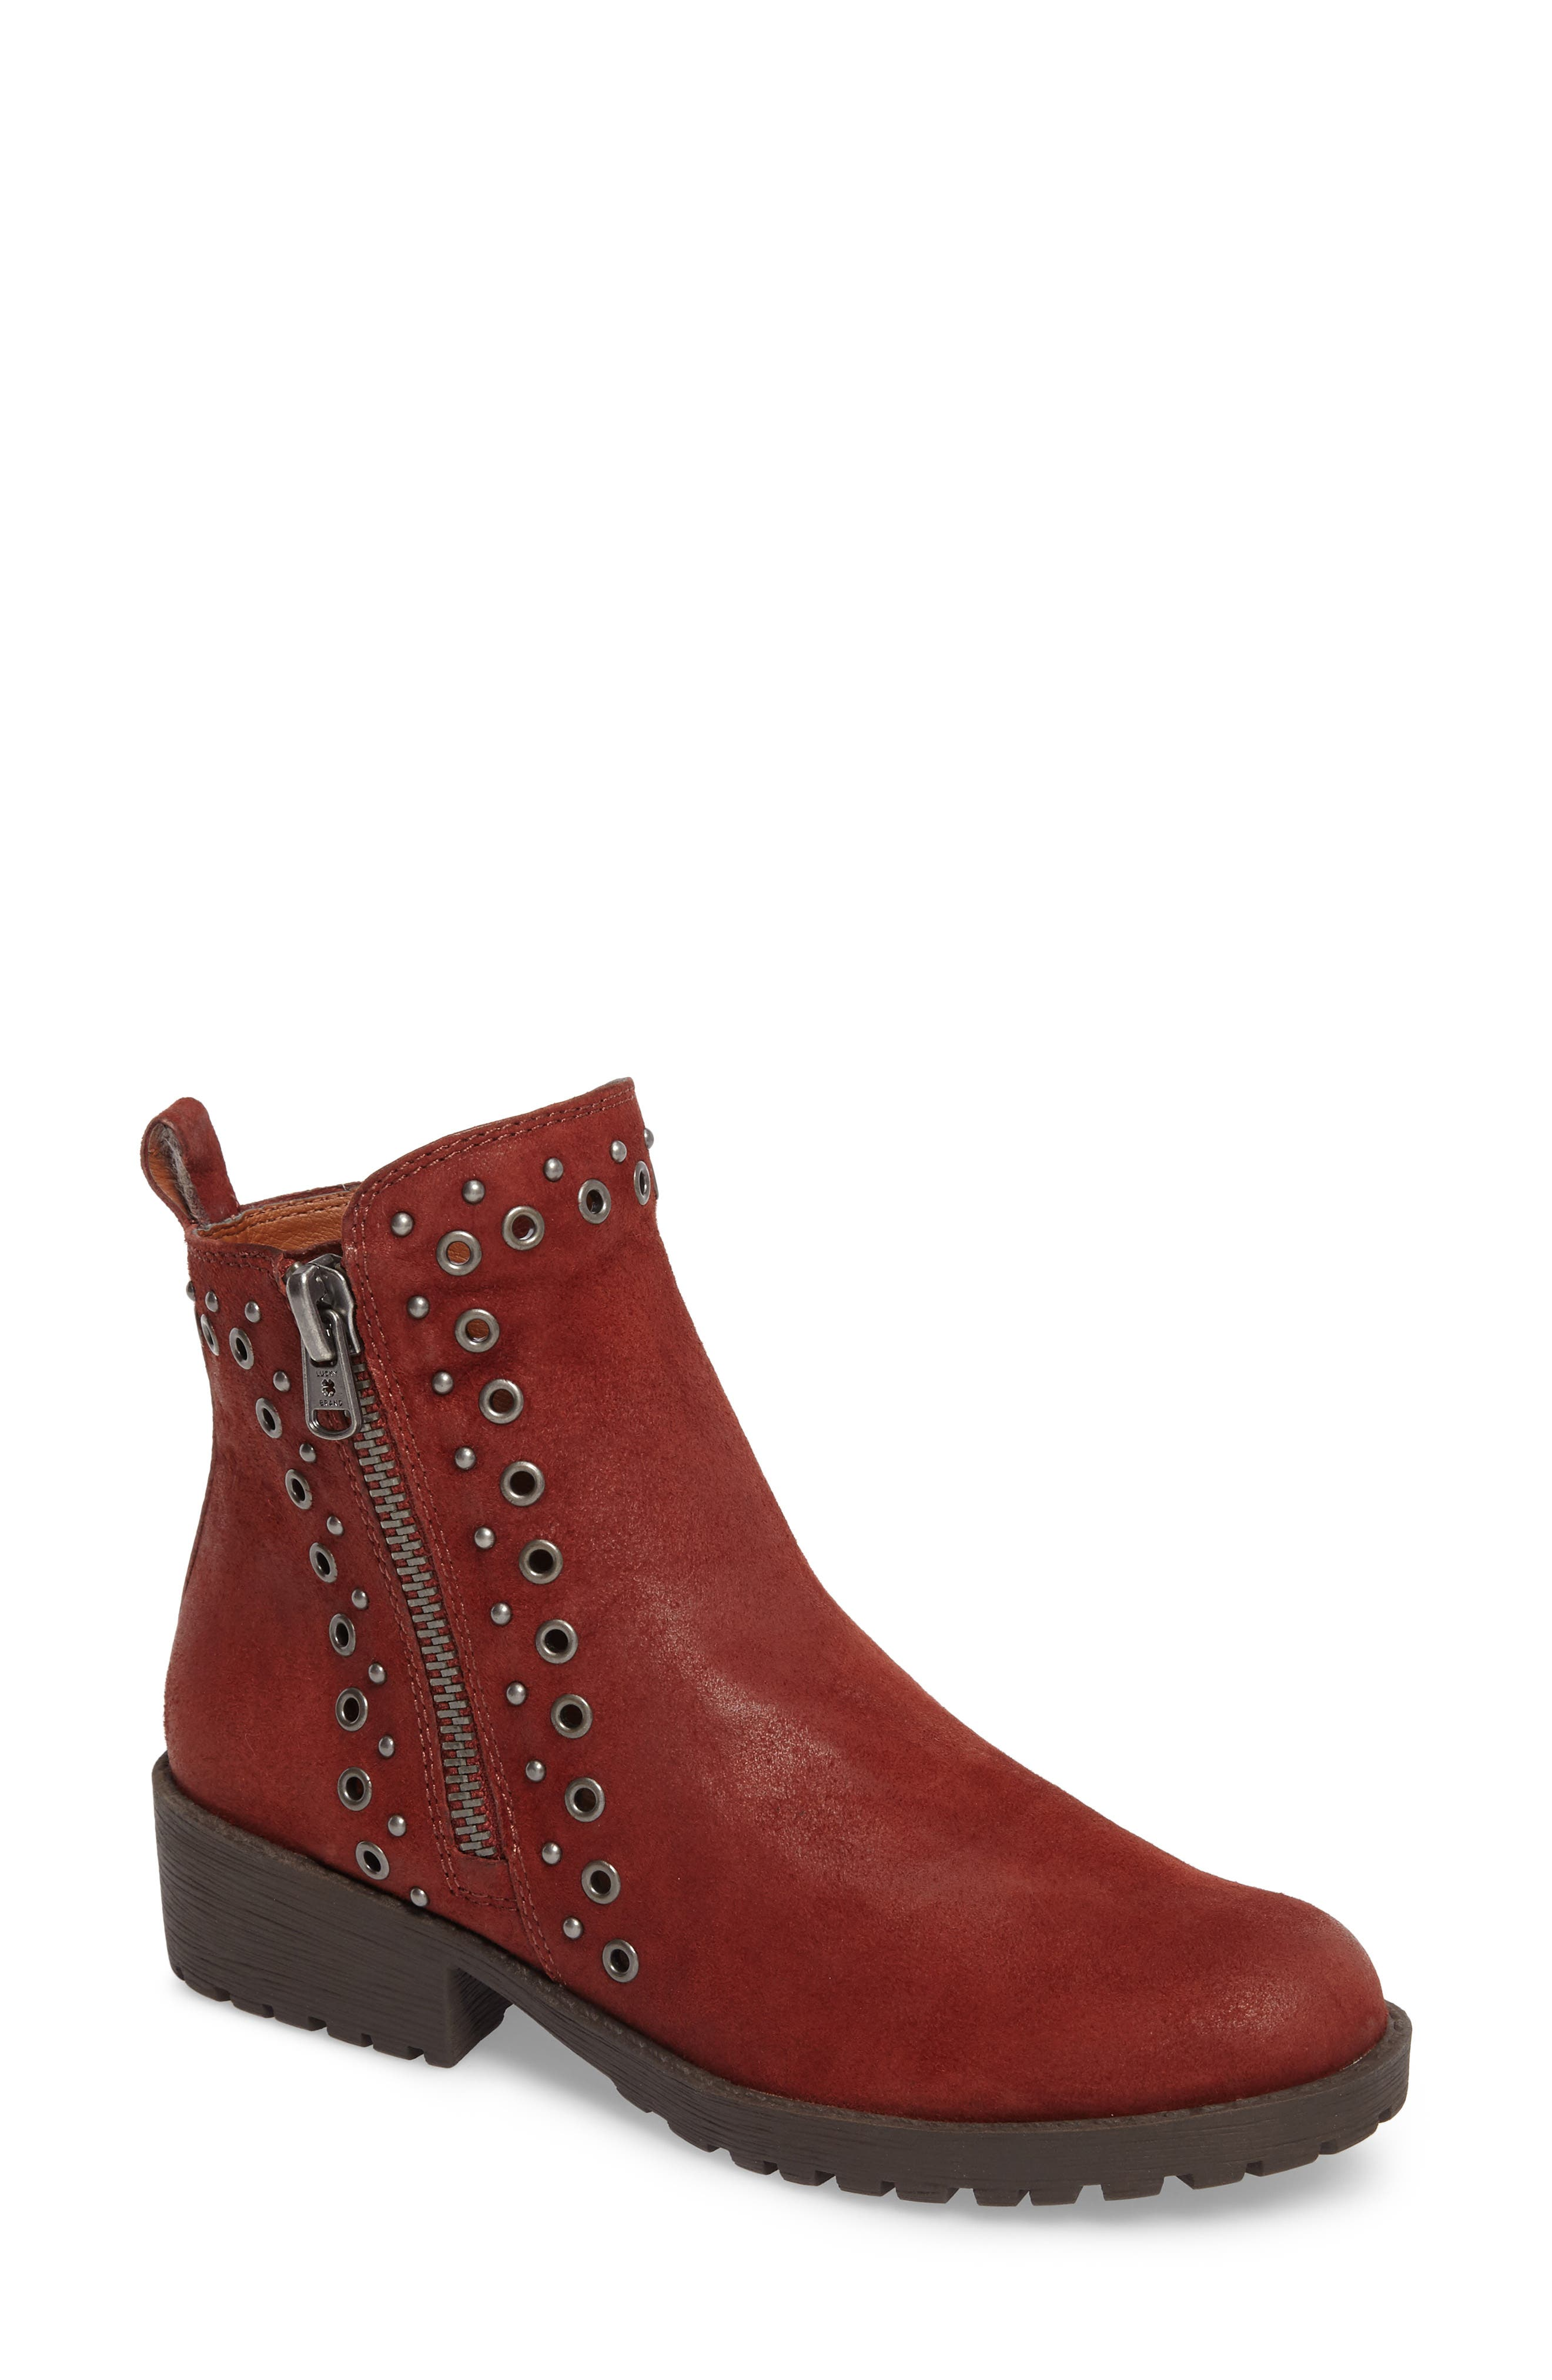 Hannie Embellished Bootie,                         Main,                         color, Sable Leather